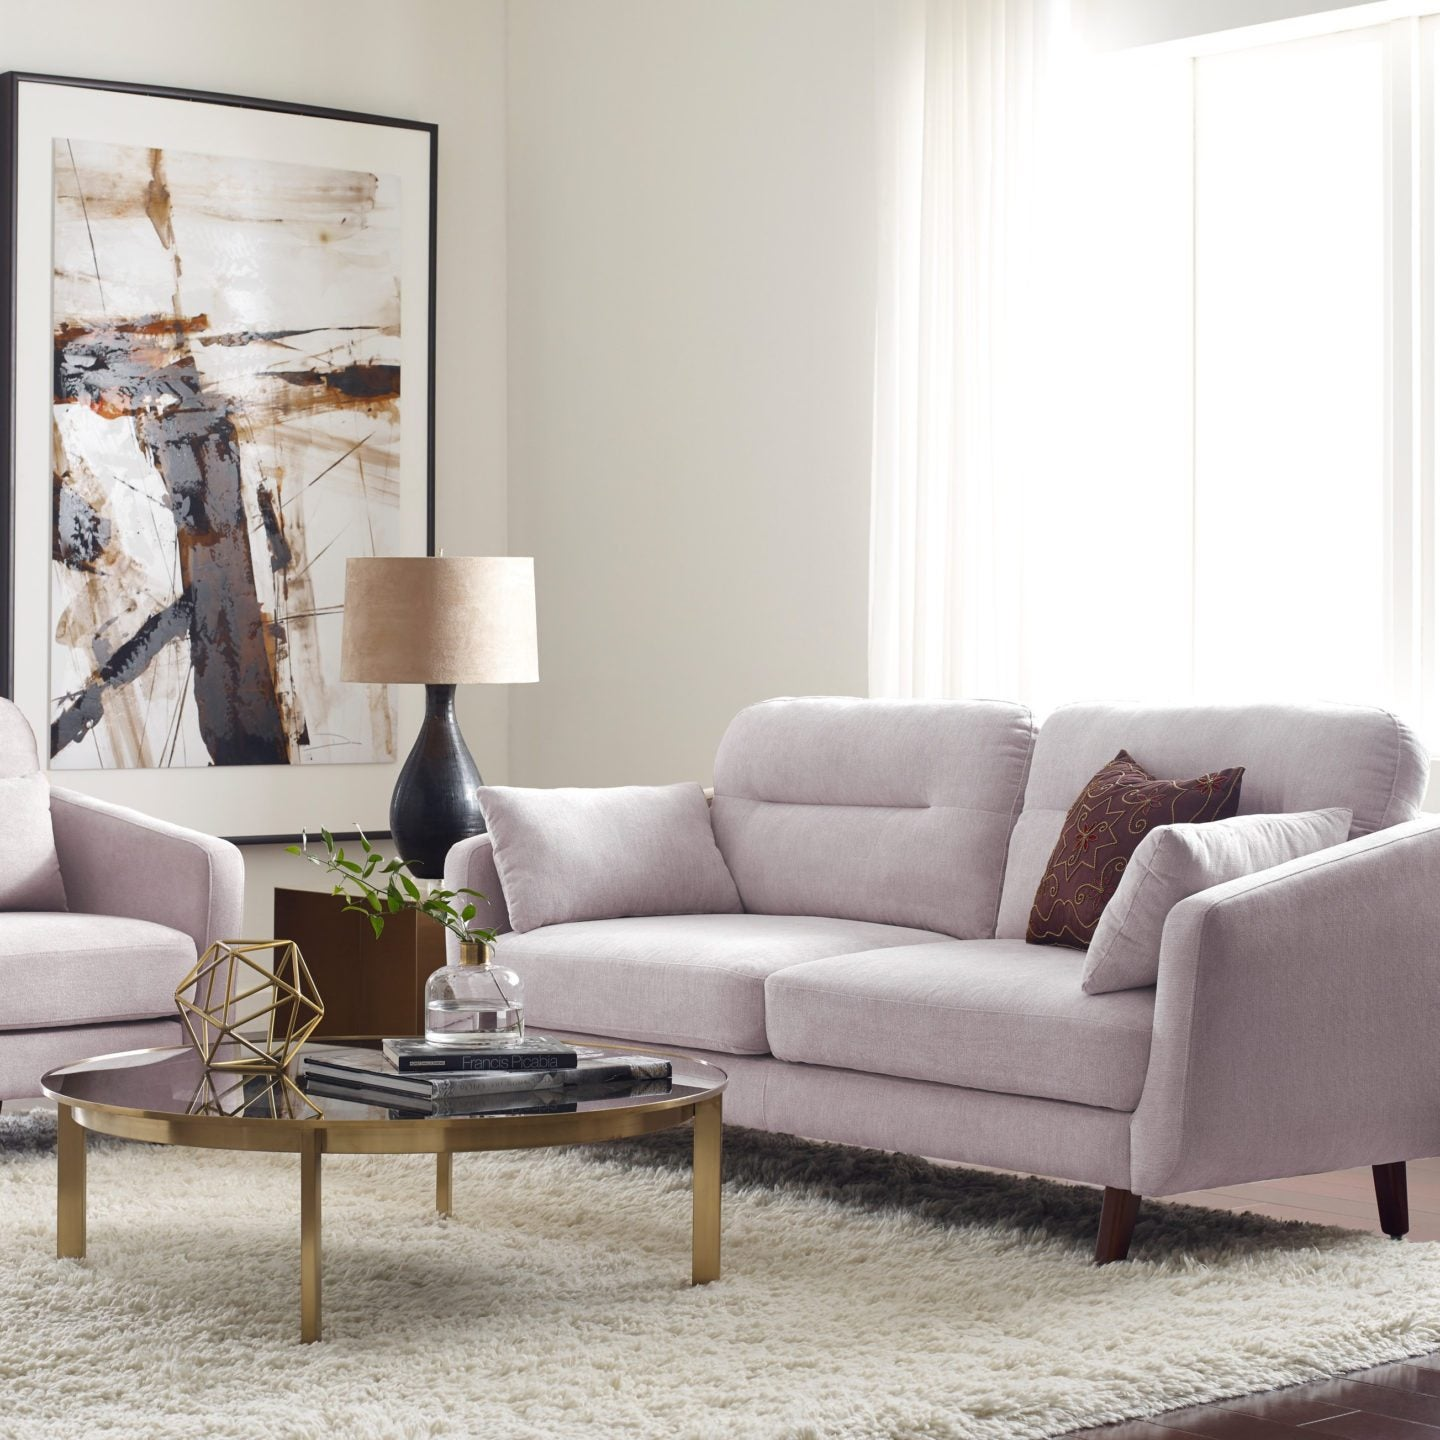 Top 5 Steps To Cleaning Your Microfiber Sofa Overstock Com